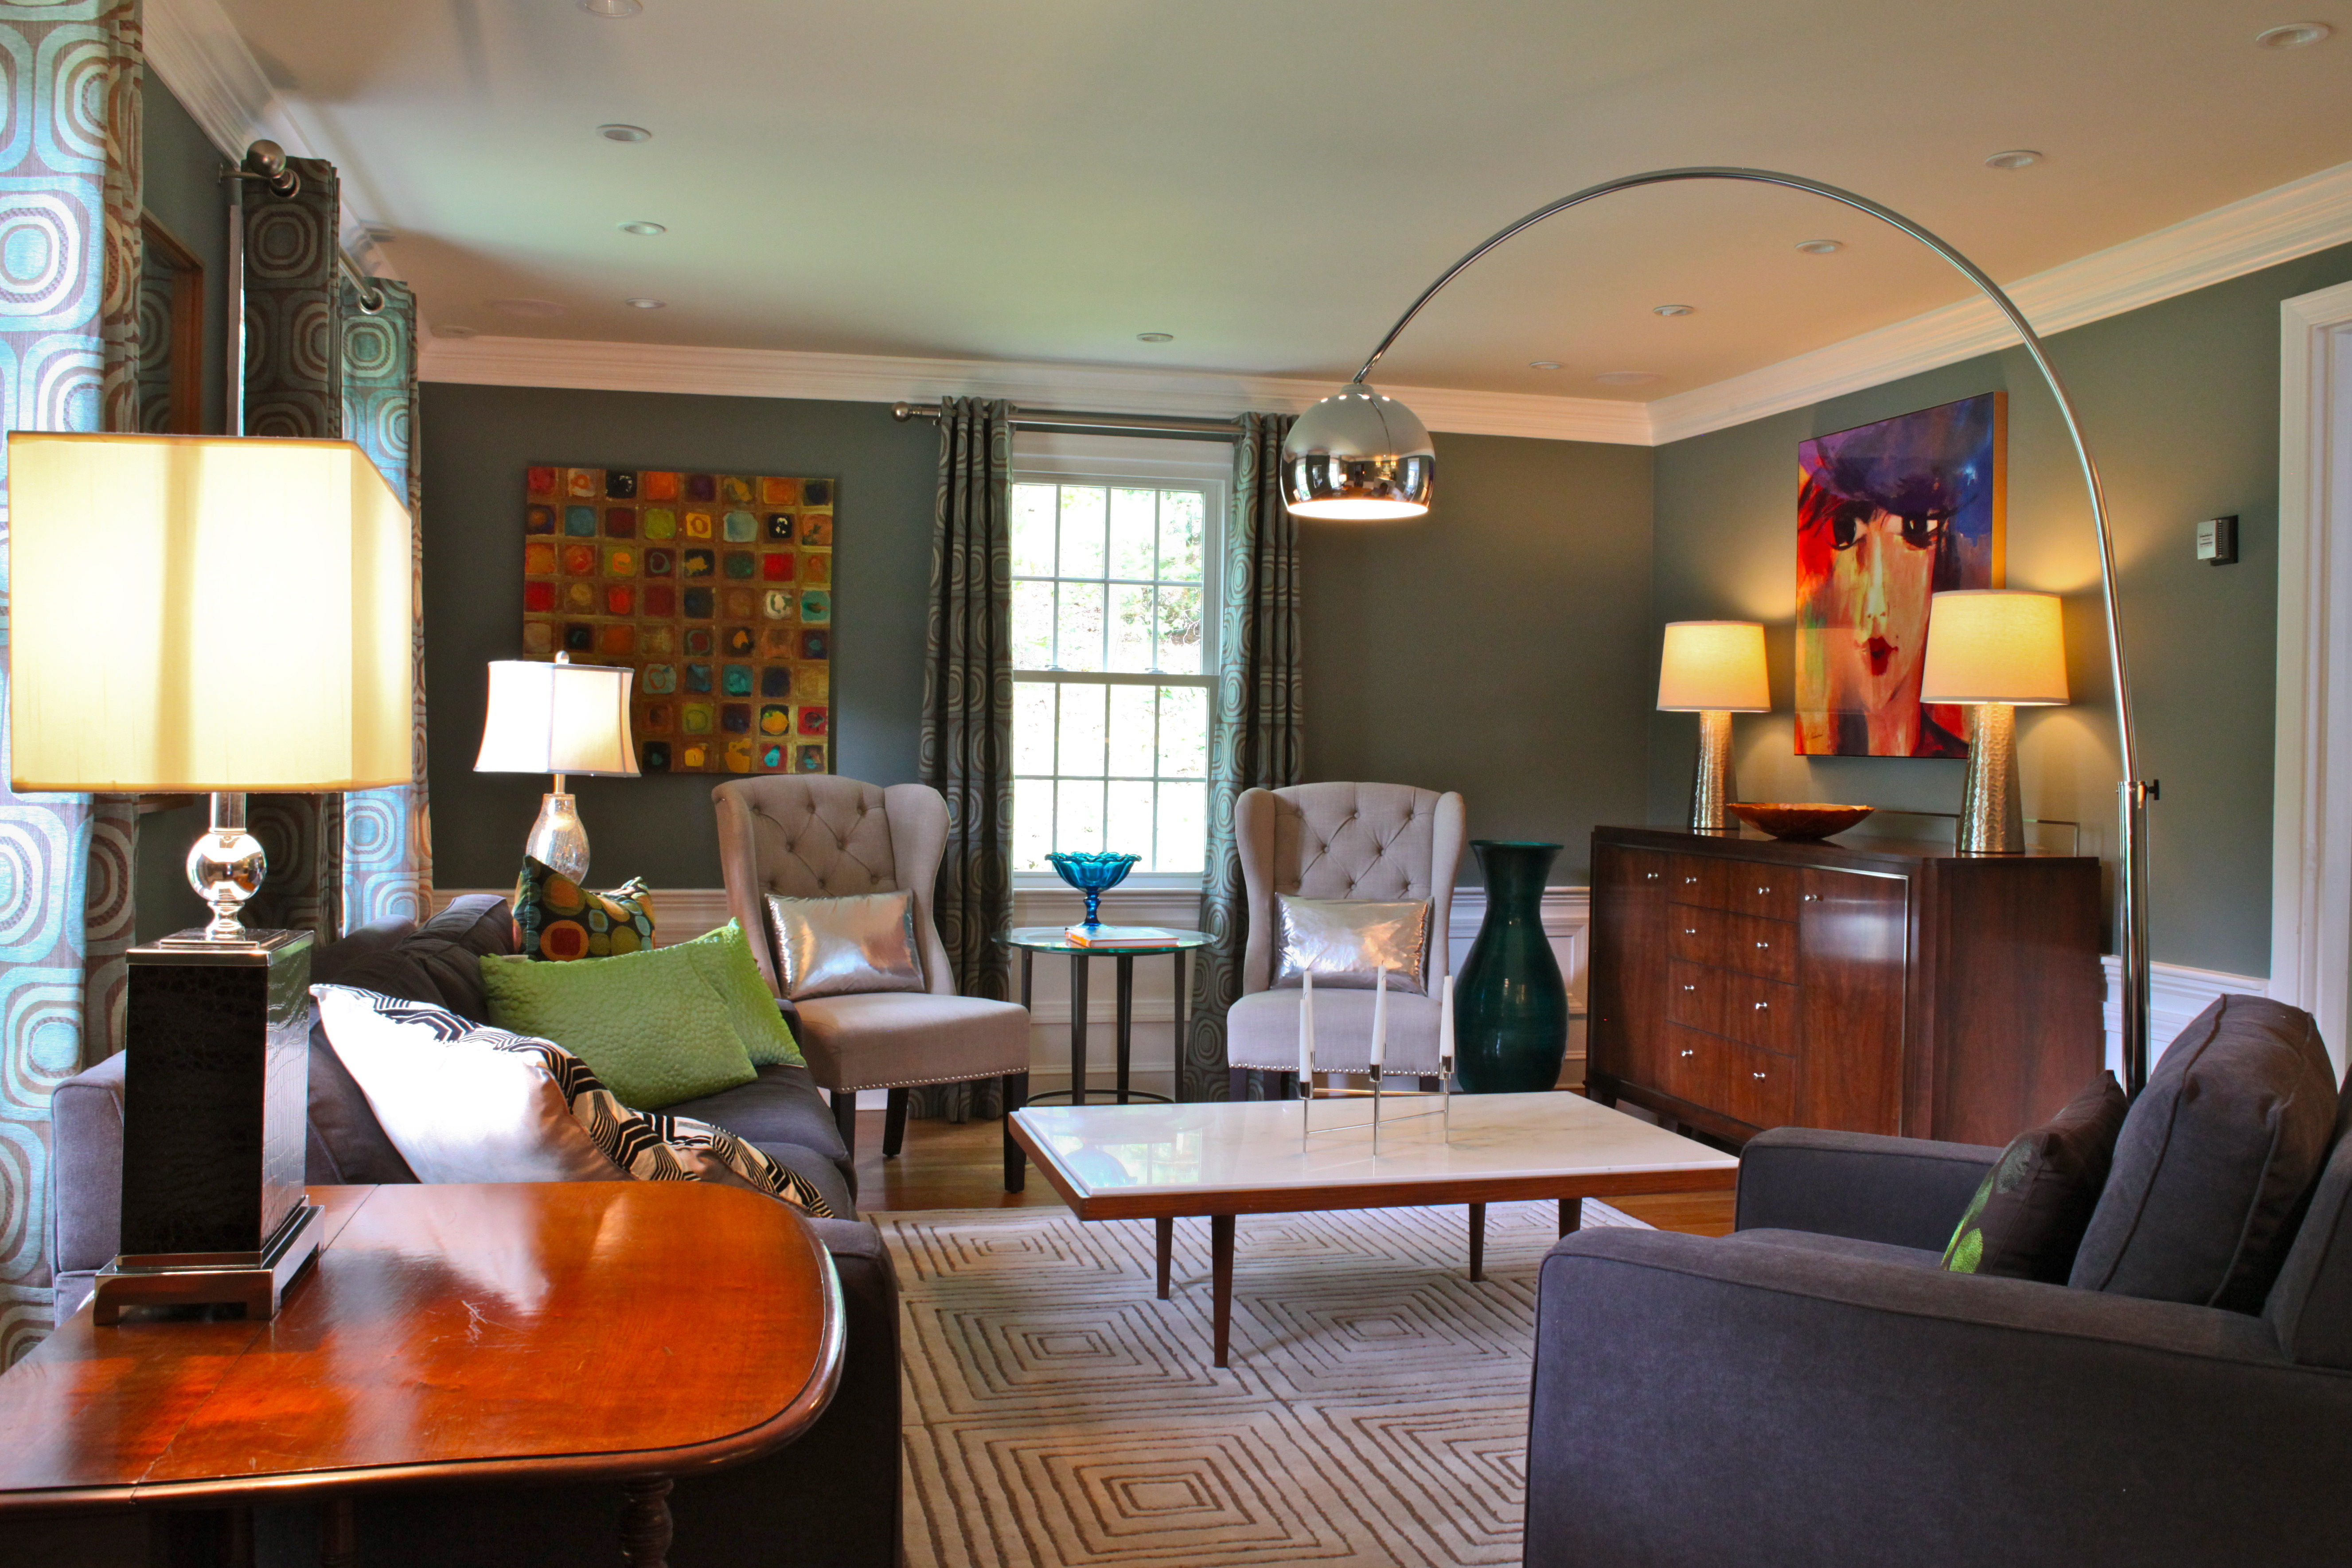 Banish The Winter Blues Blue Wall Colors For Spring Kdz Designs Interior Design Western Ma